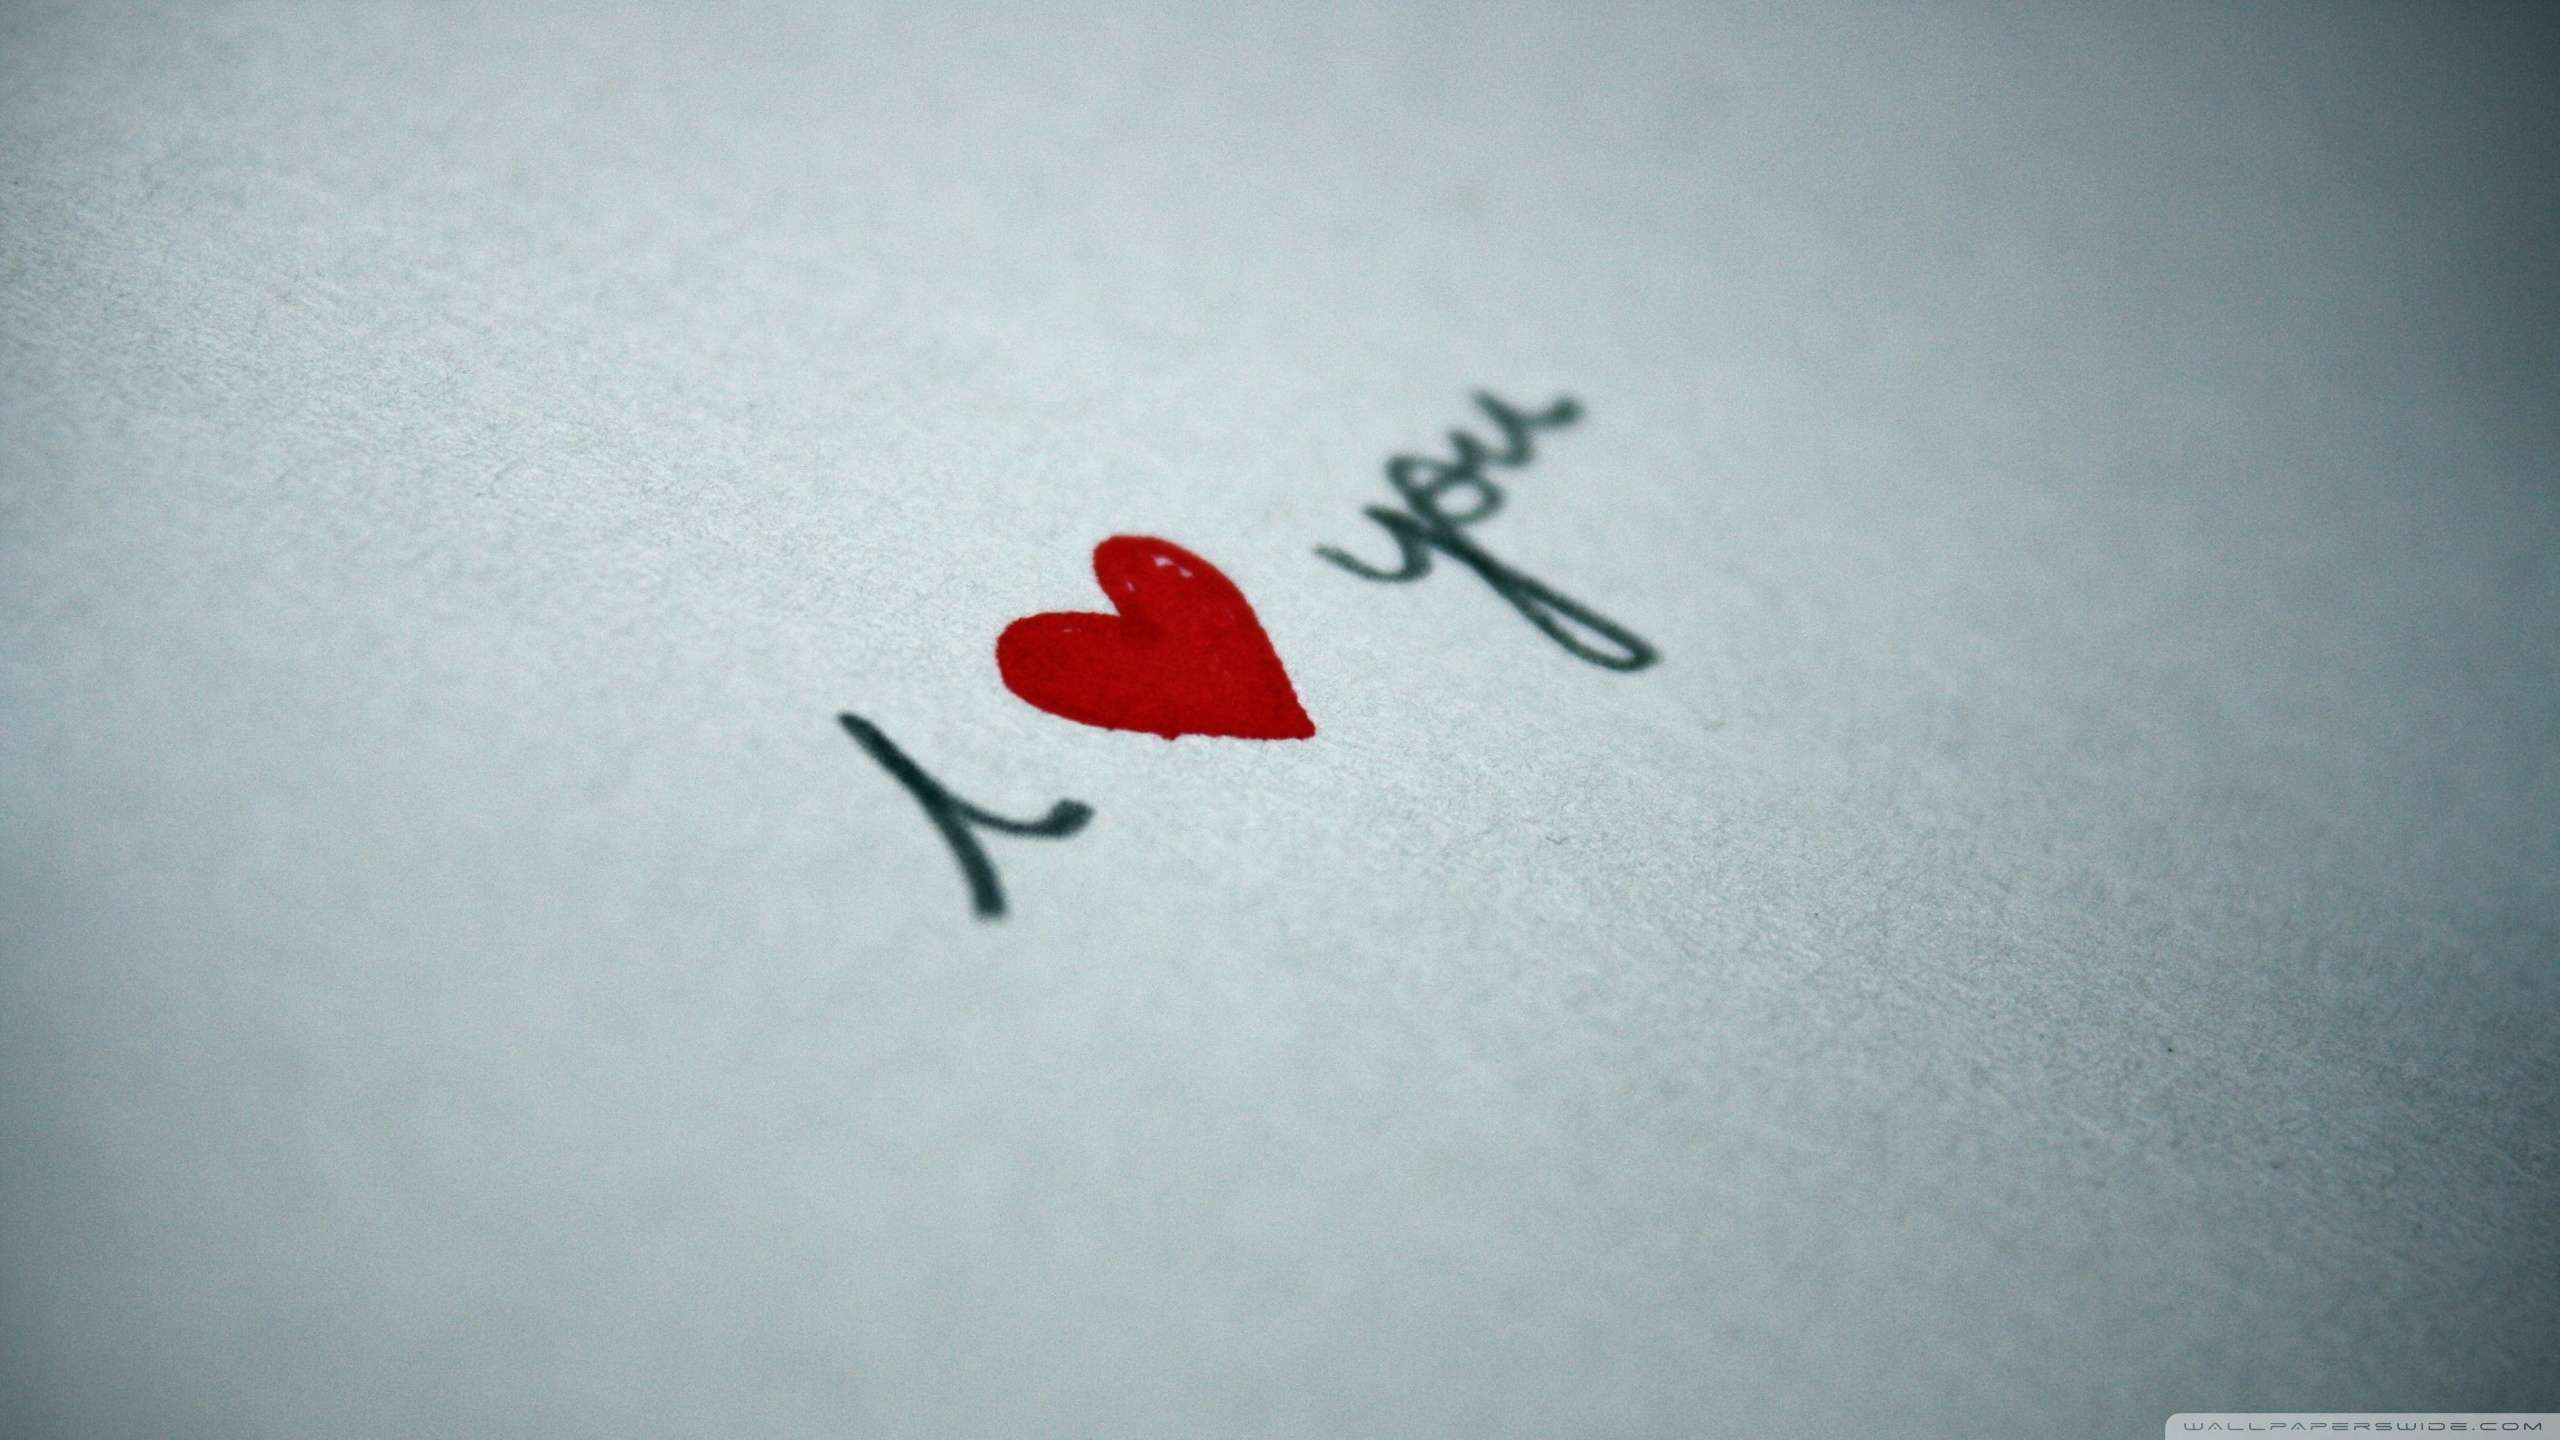 I Love You Written On Paper Wallpaper : Hd Wallpapers